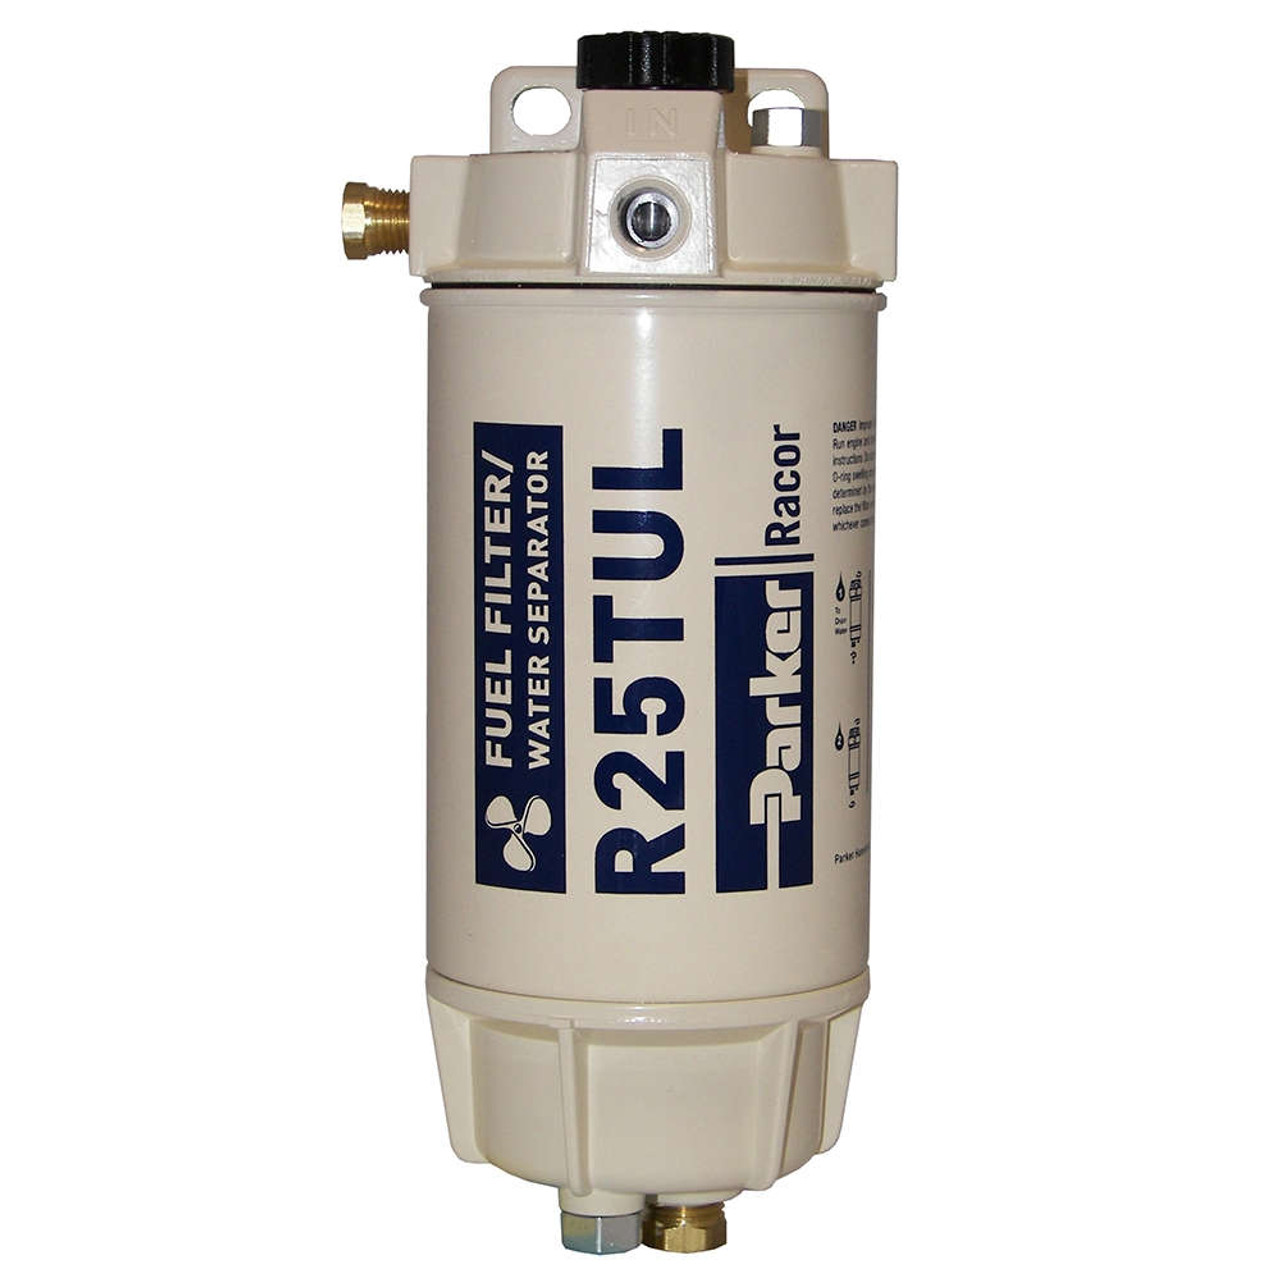 hight resolution of racor 1 4 in 45 gph aquabloc marine spin on type diesel fuel filter water separator assembly 6 qty john m ellsworth co inc